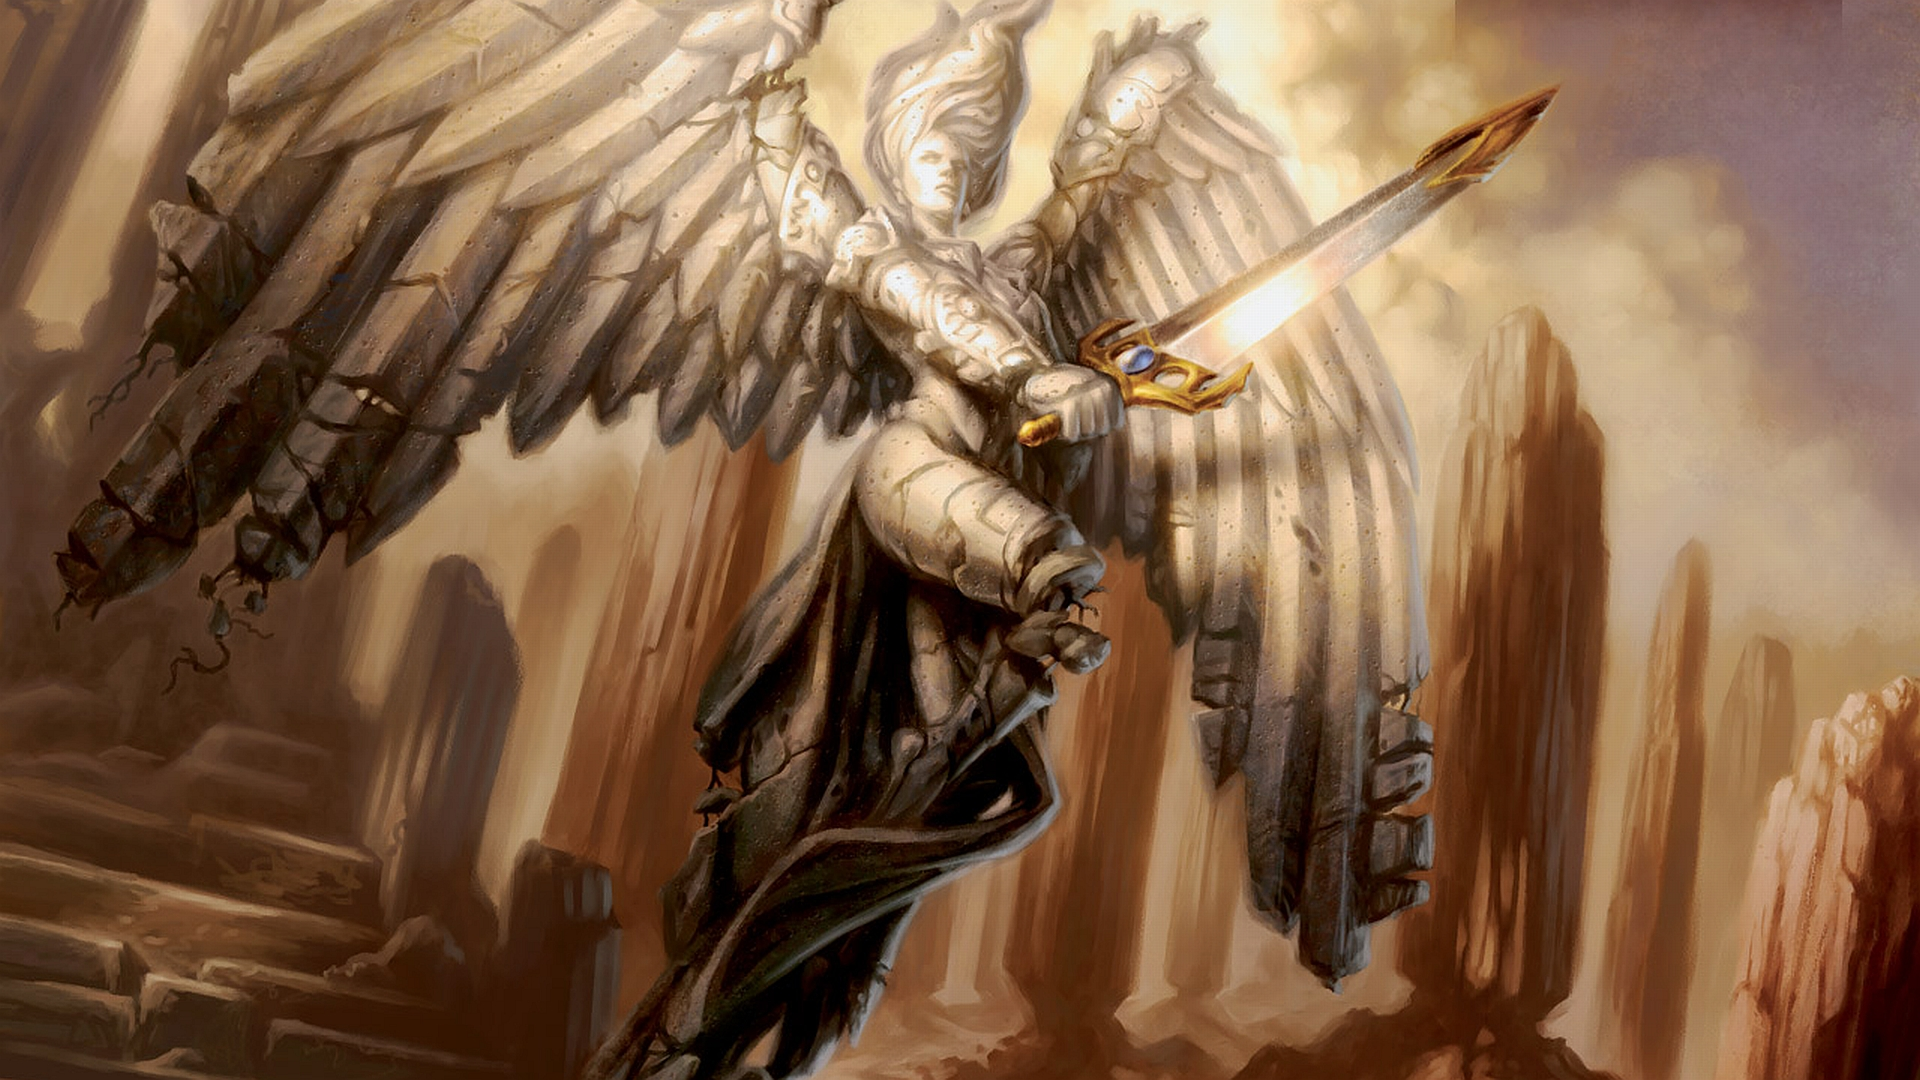 Magic The Gathering Hd Wallpaper Background Image 1920x1080